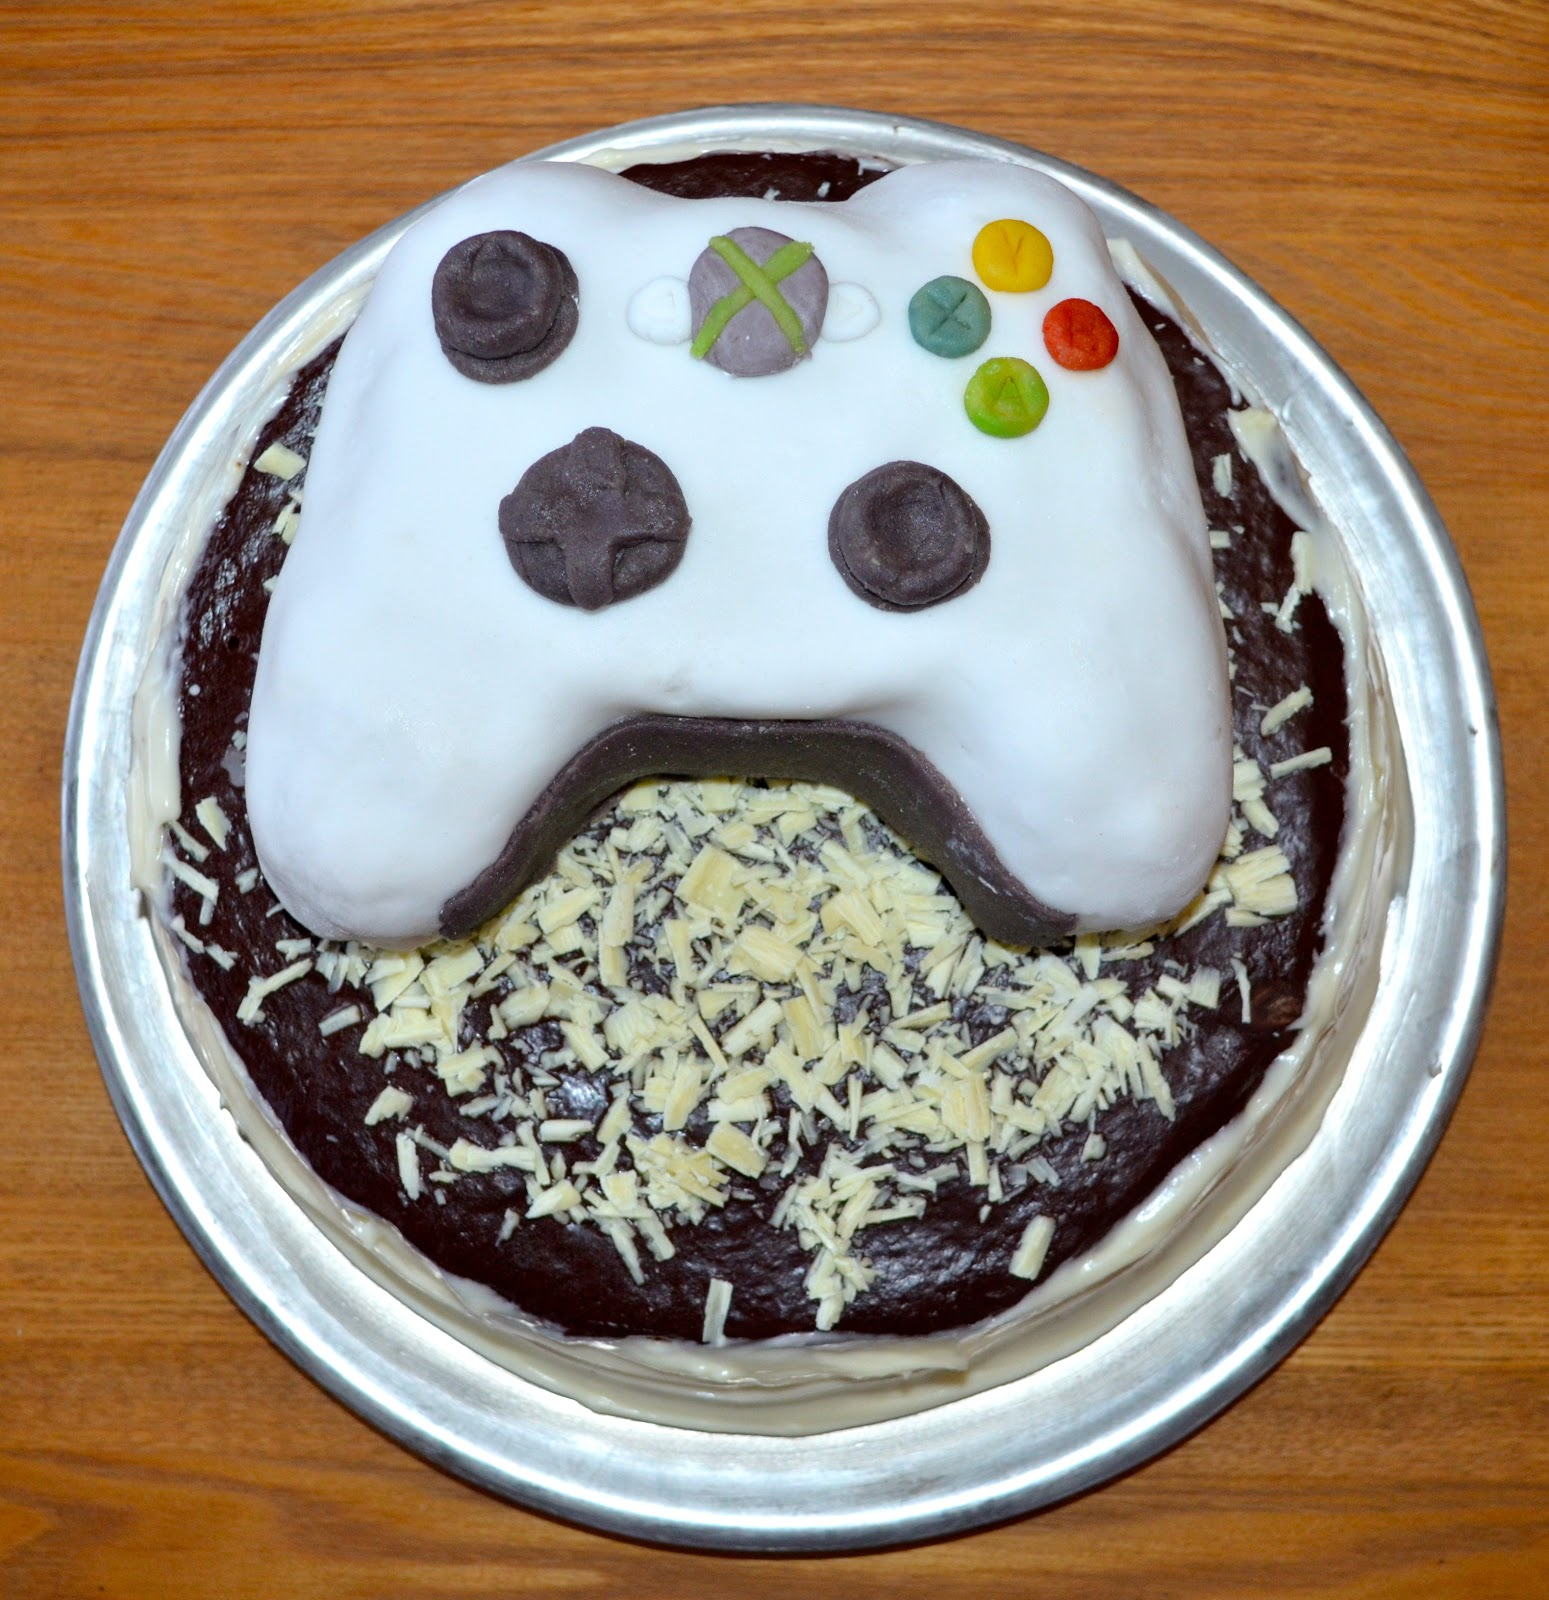 Onna S Little Blog Xbox Birthday Cake Dieters Look